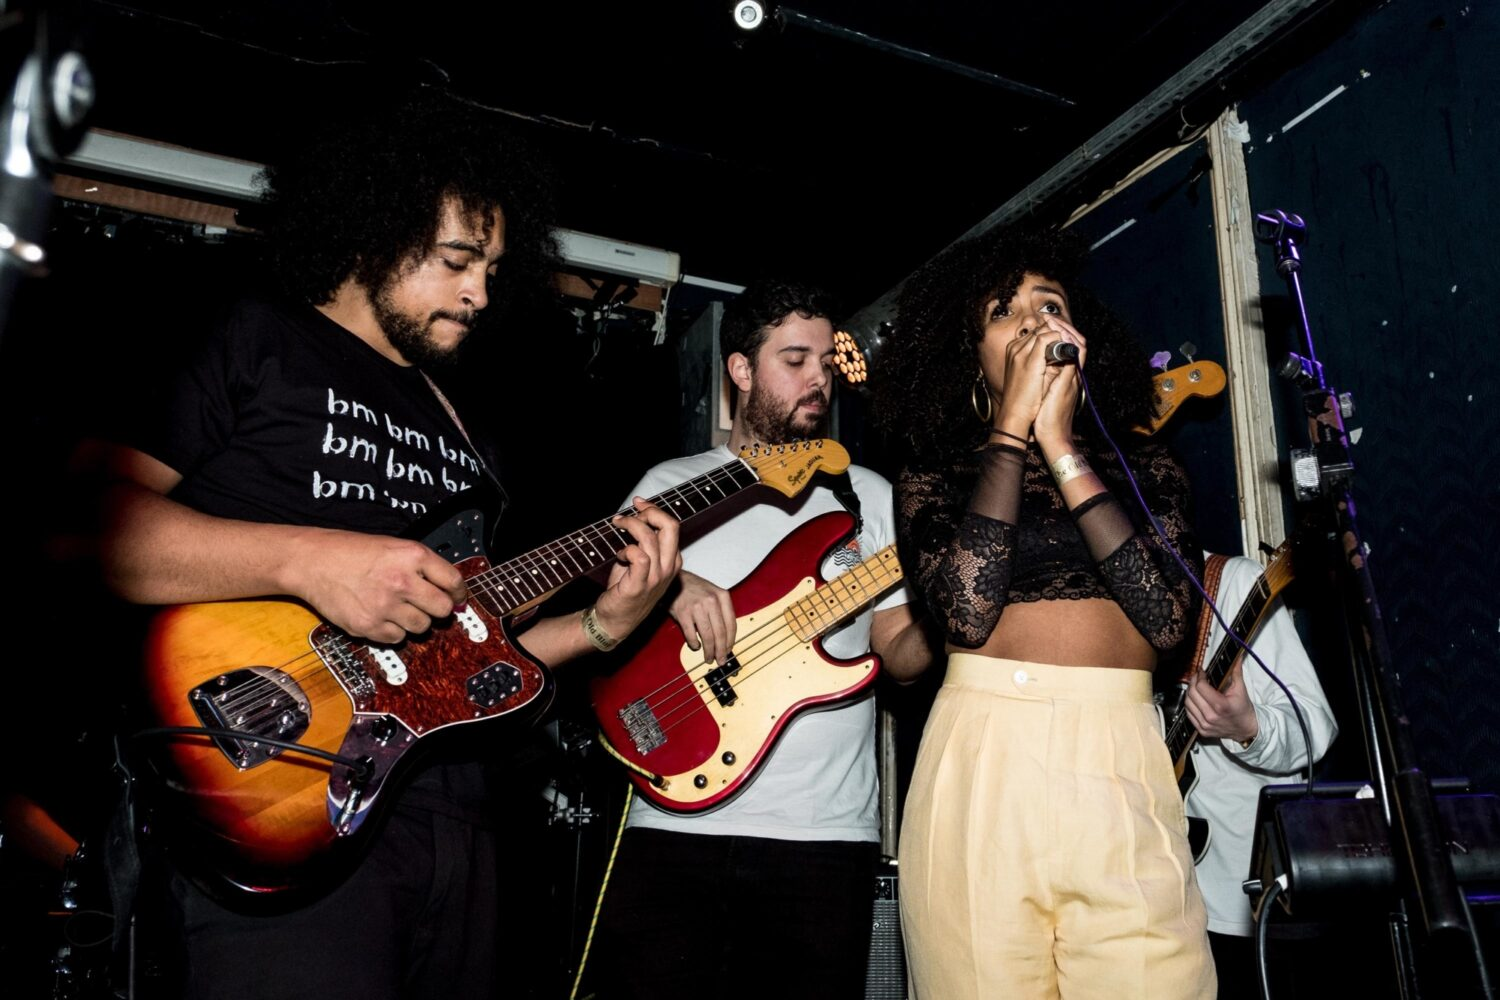 Wu-Lu, Audiobooks, Black Country New Road and Sistertalk bring a weird and wonderful night of noise to Hello 2019